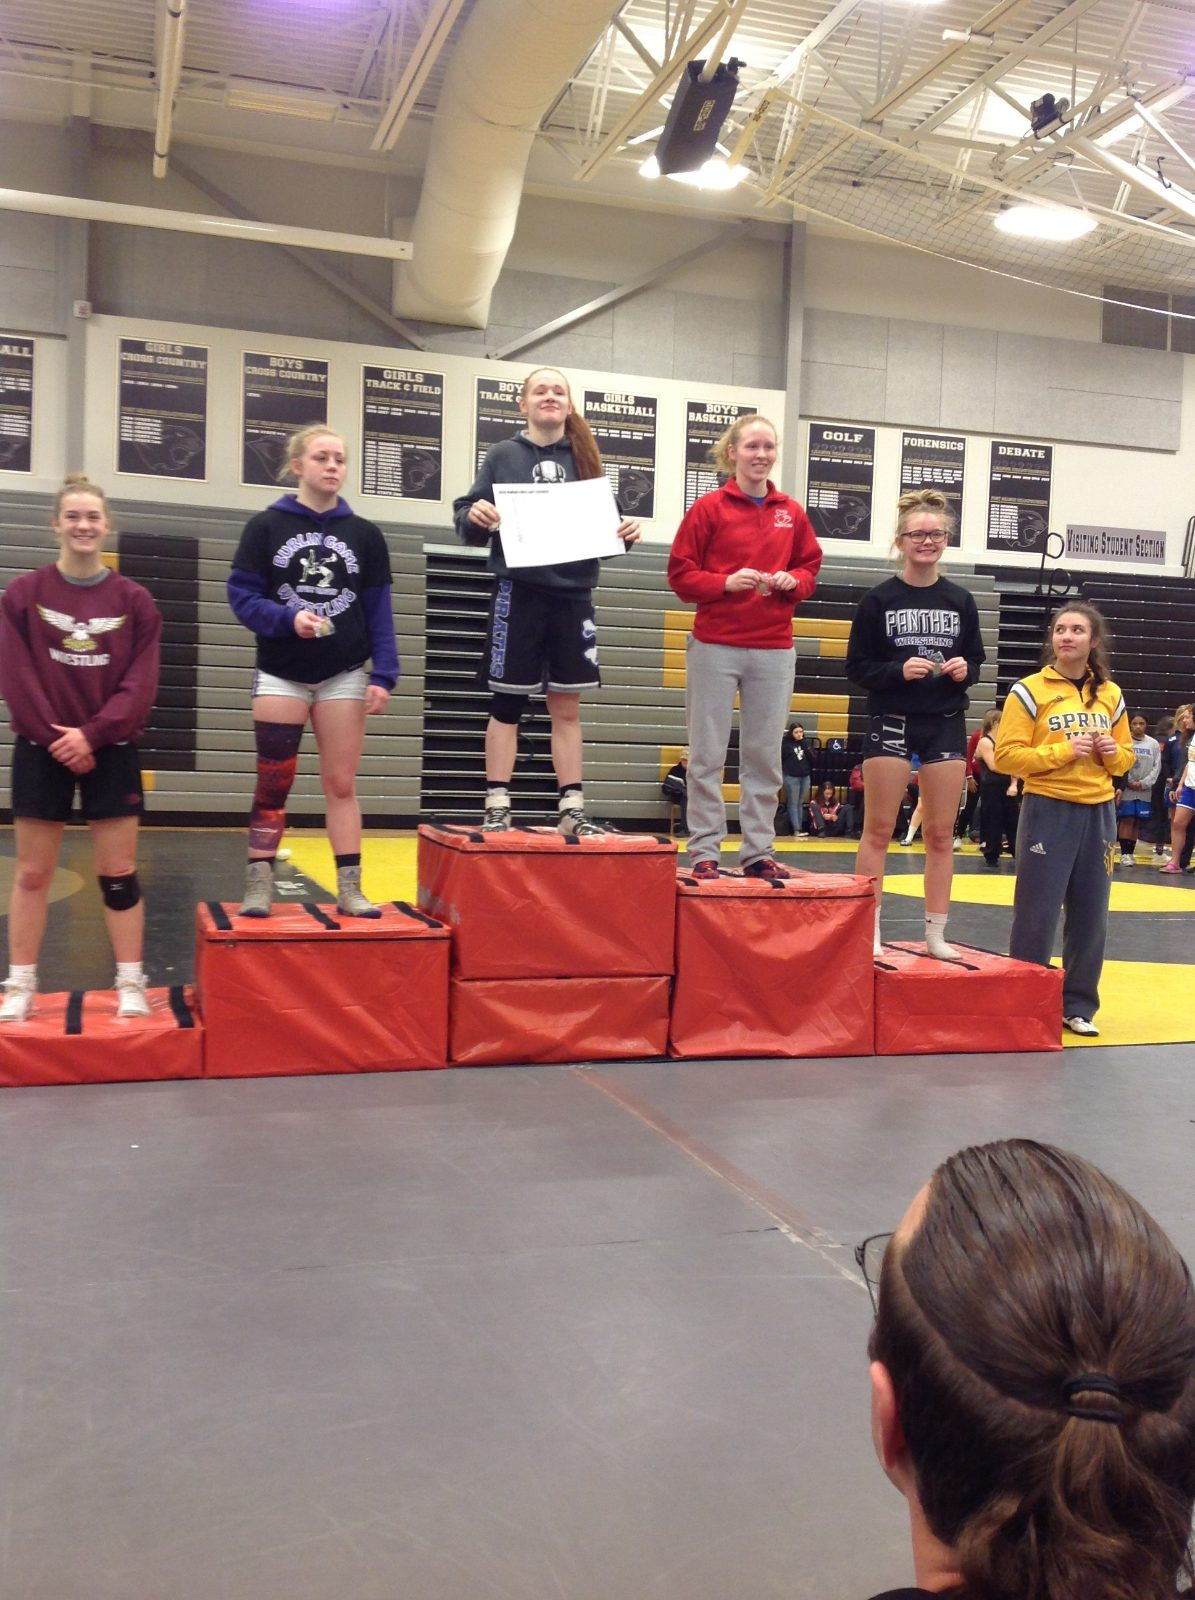 Wrestling Results from the Weekend